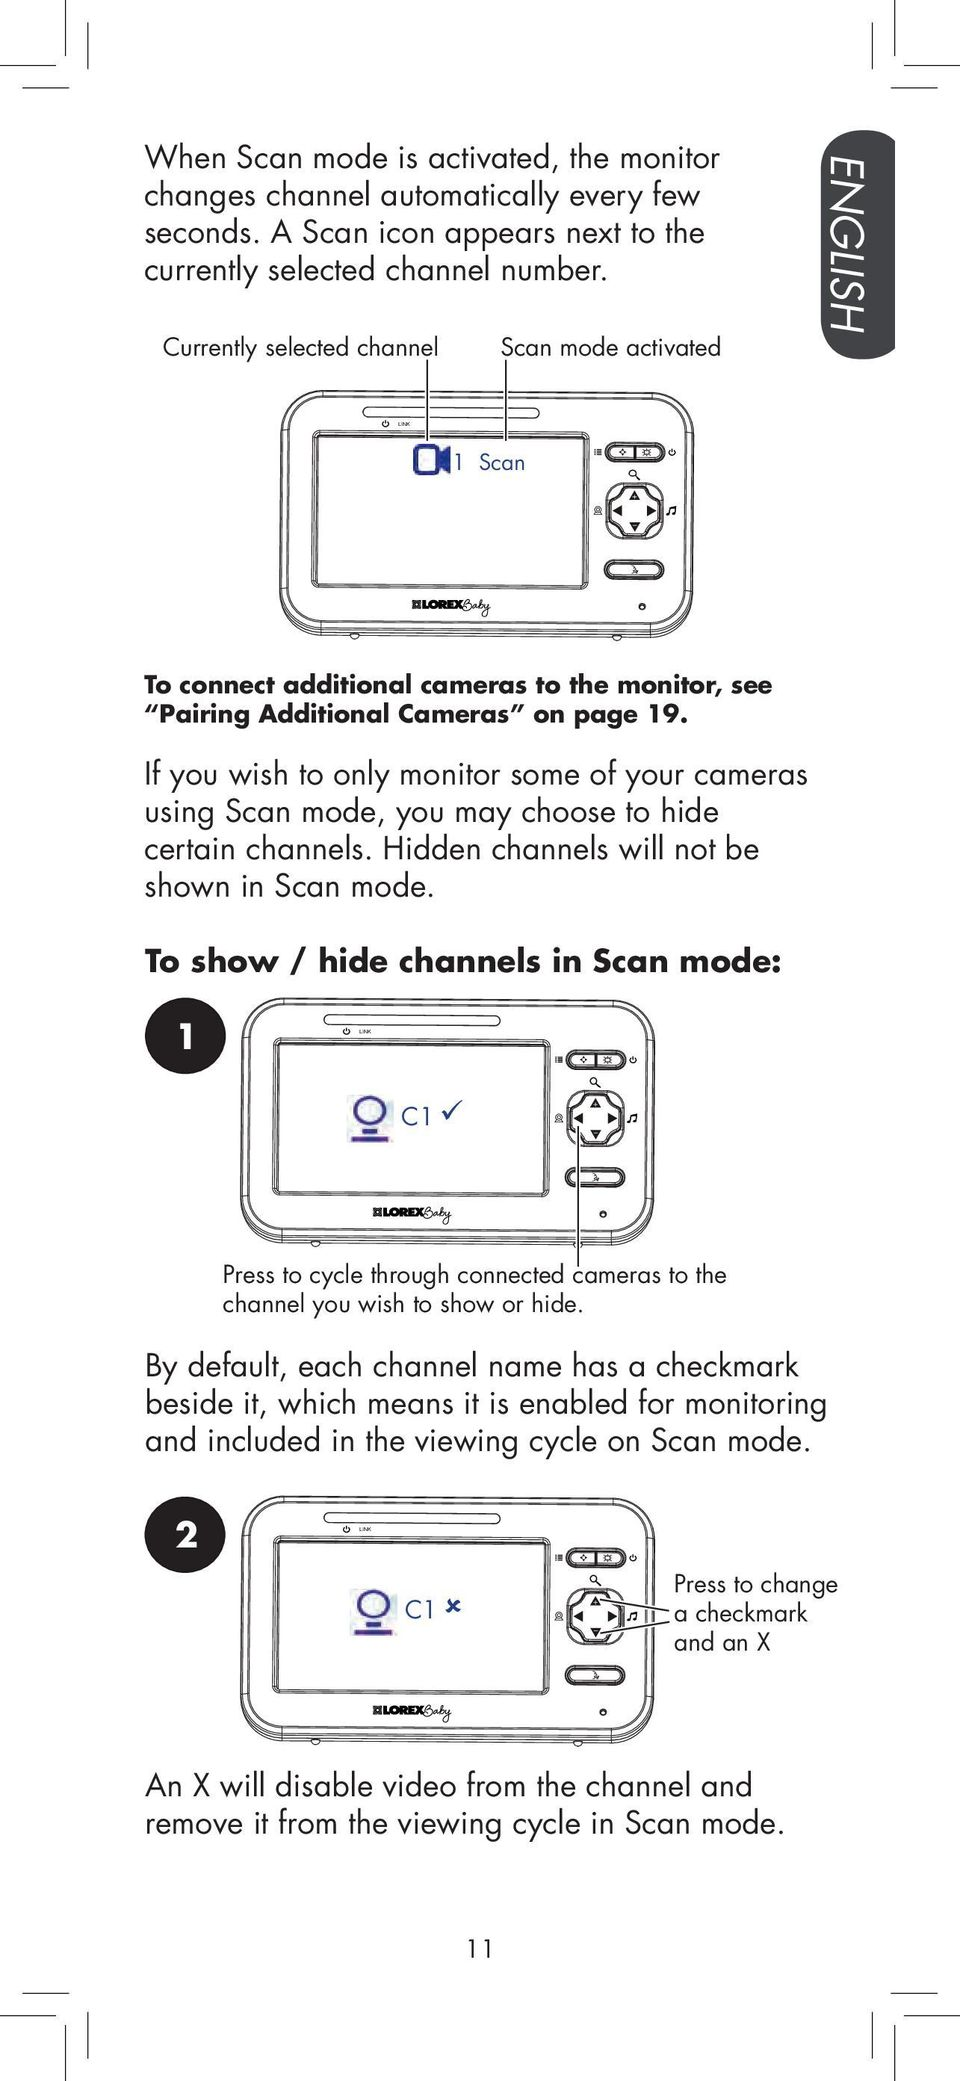 If you wish to only monitor some of your cameras using Scan mode, you may choose to hide certain channels. Hidden channels will not be shown in Scan mode.